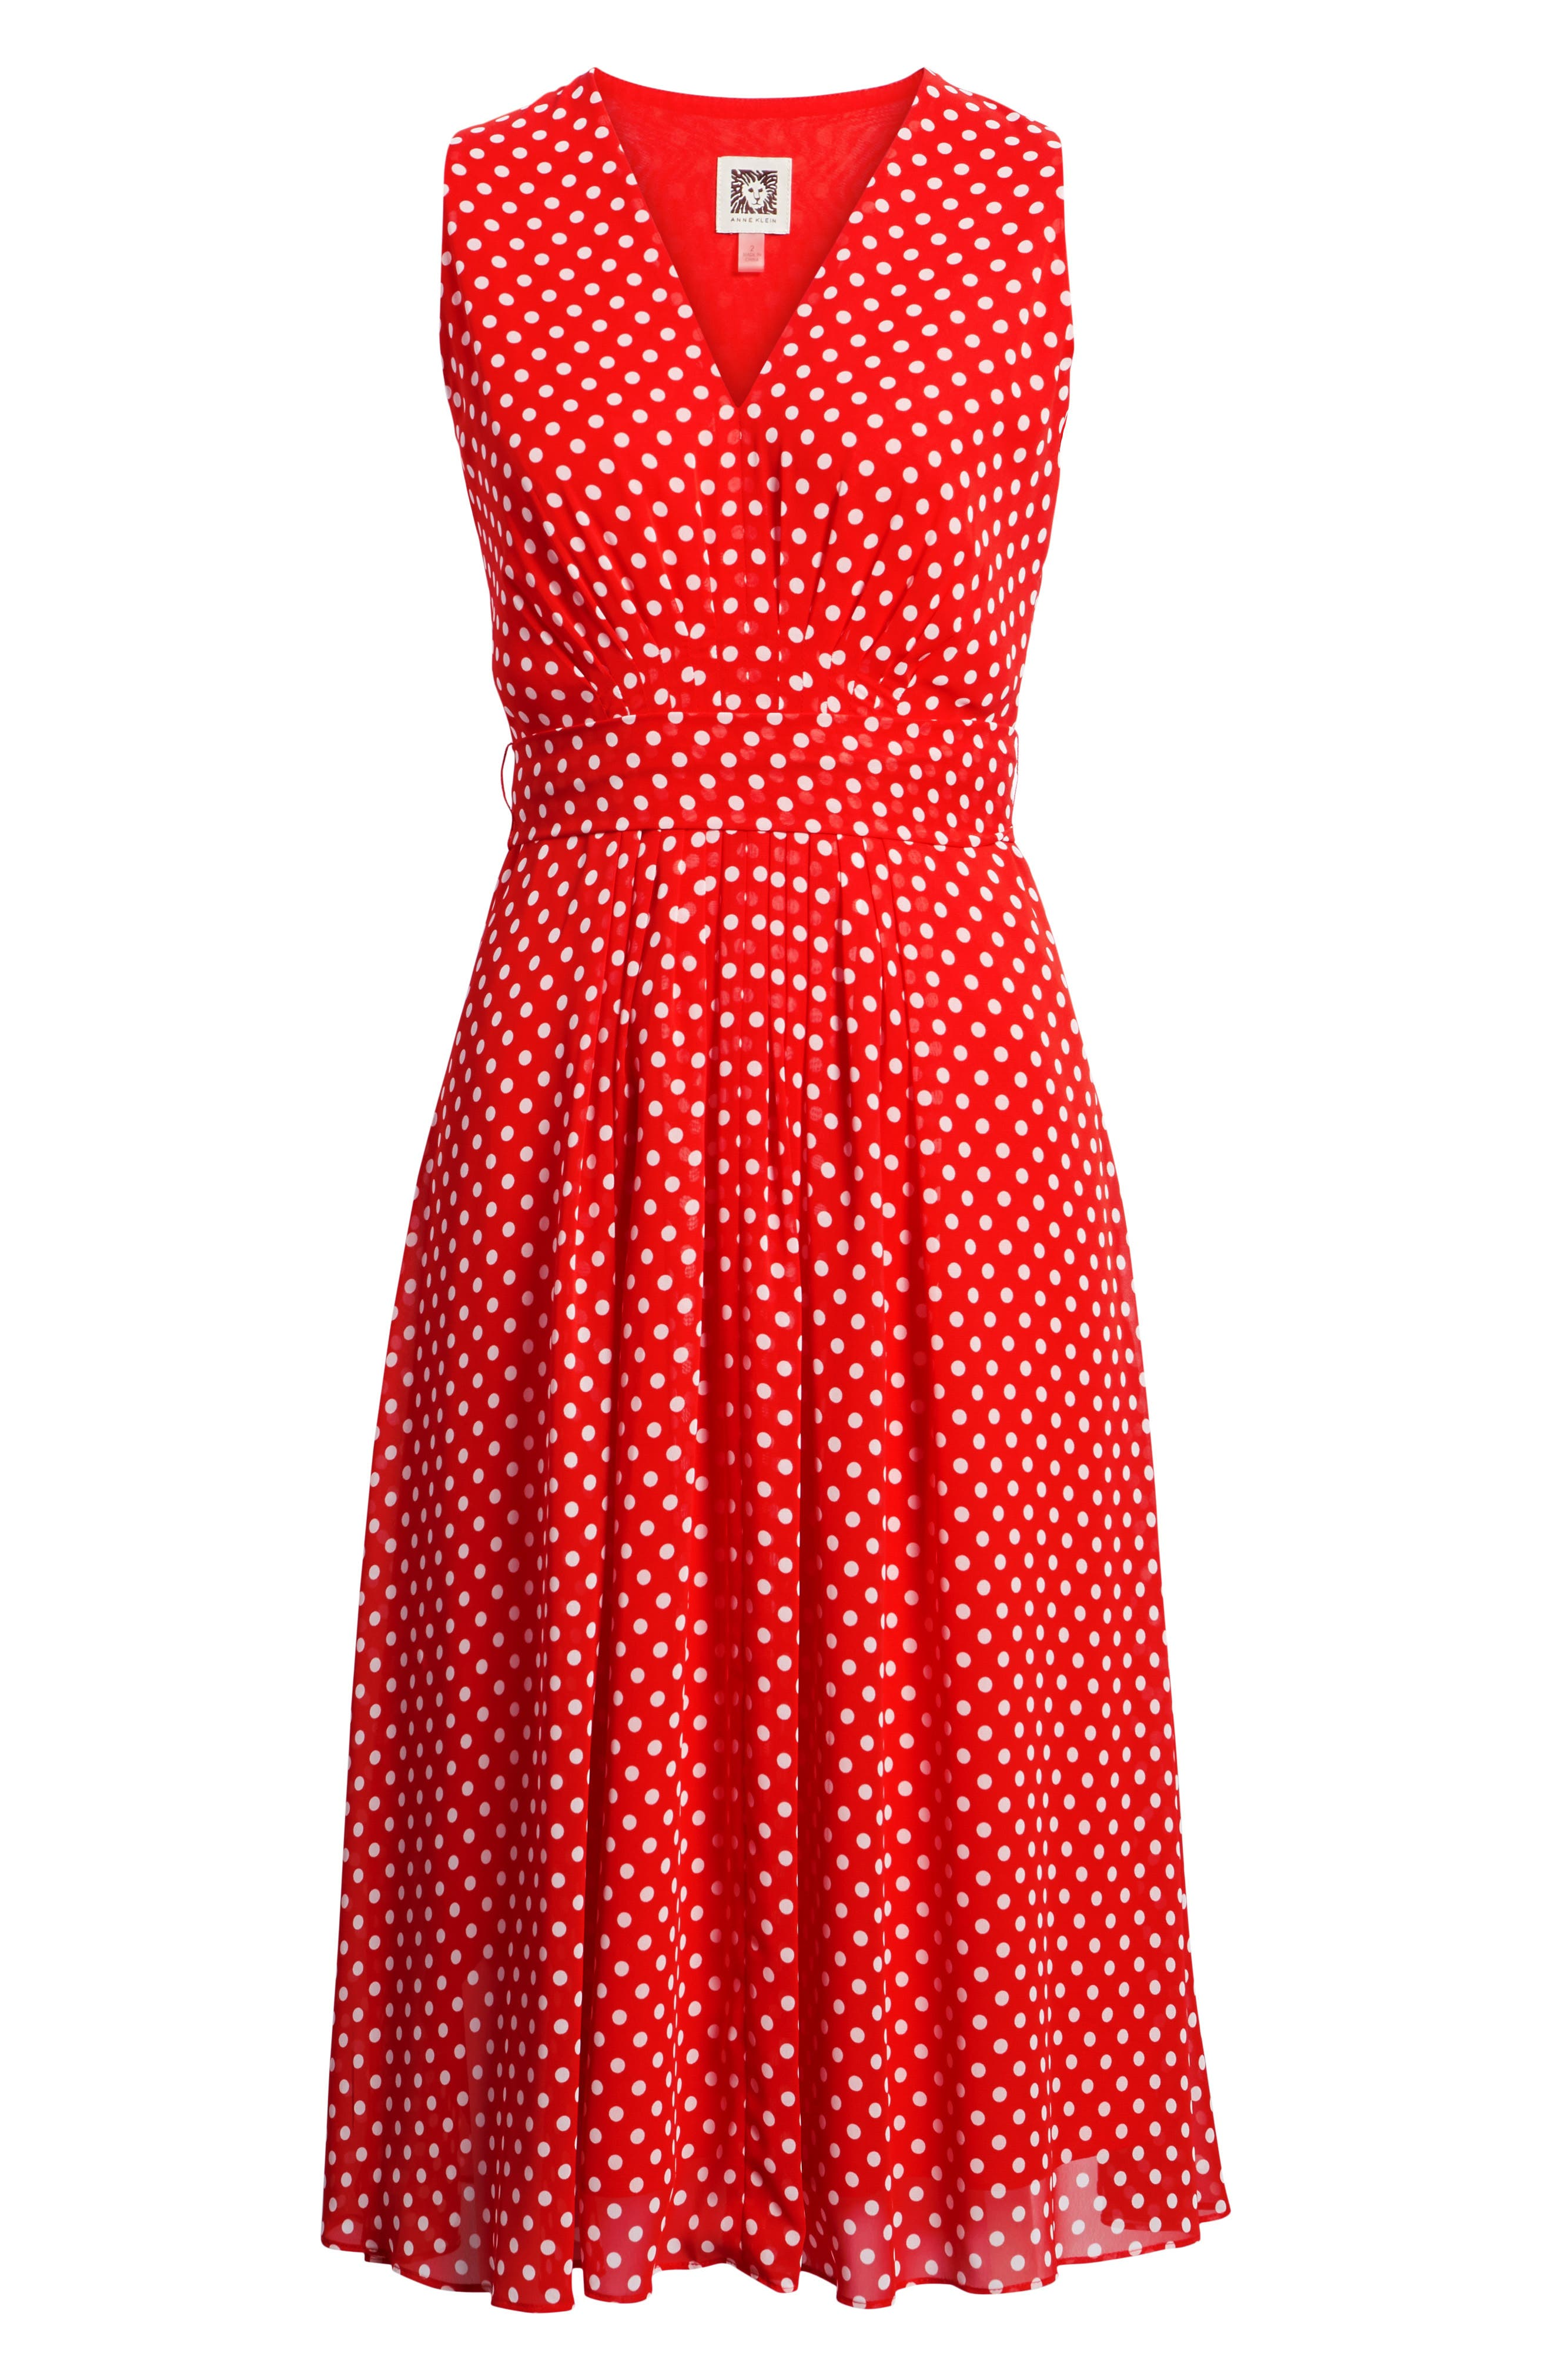 Polka Dot A-Line Dress,                             Alternate thumbnail 8, color,                             600